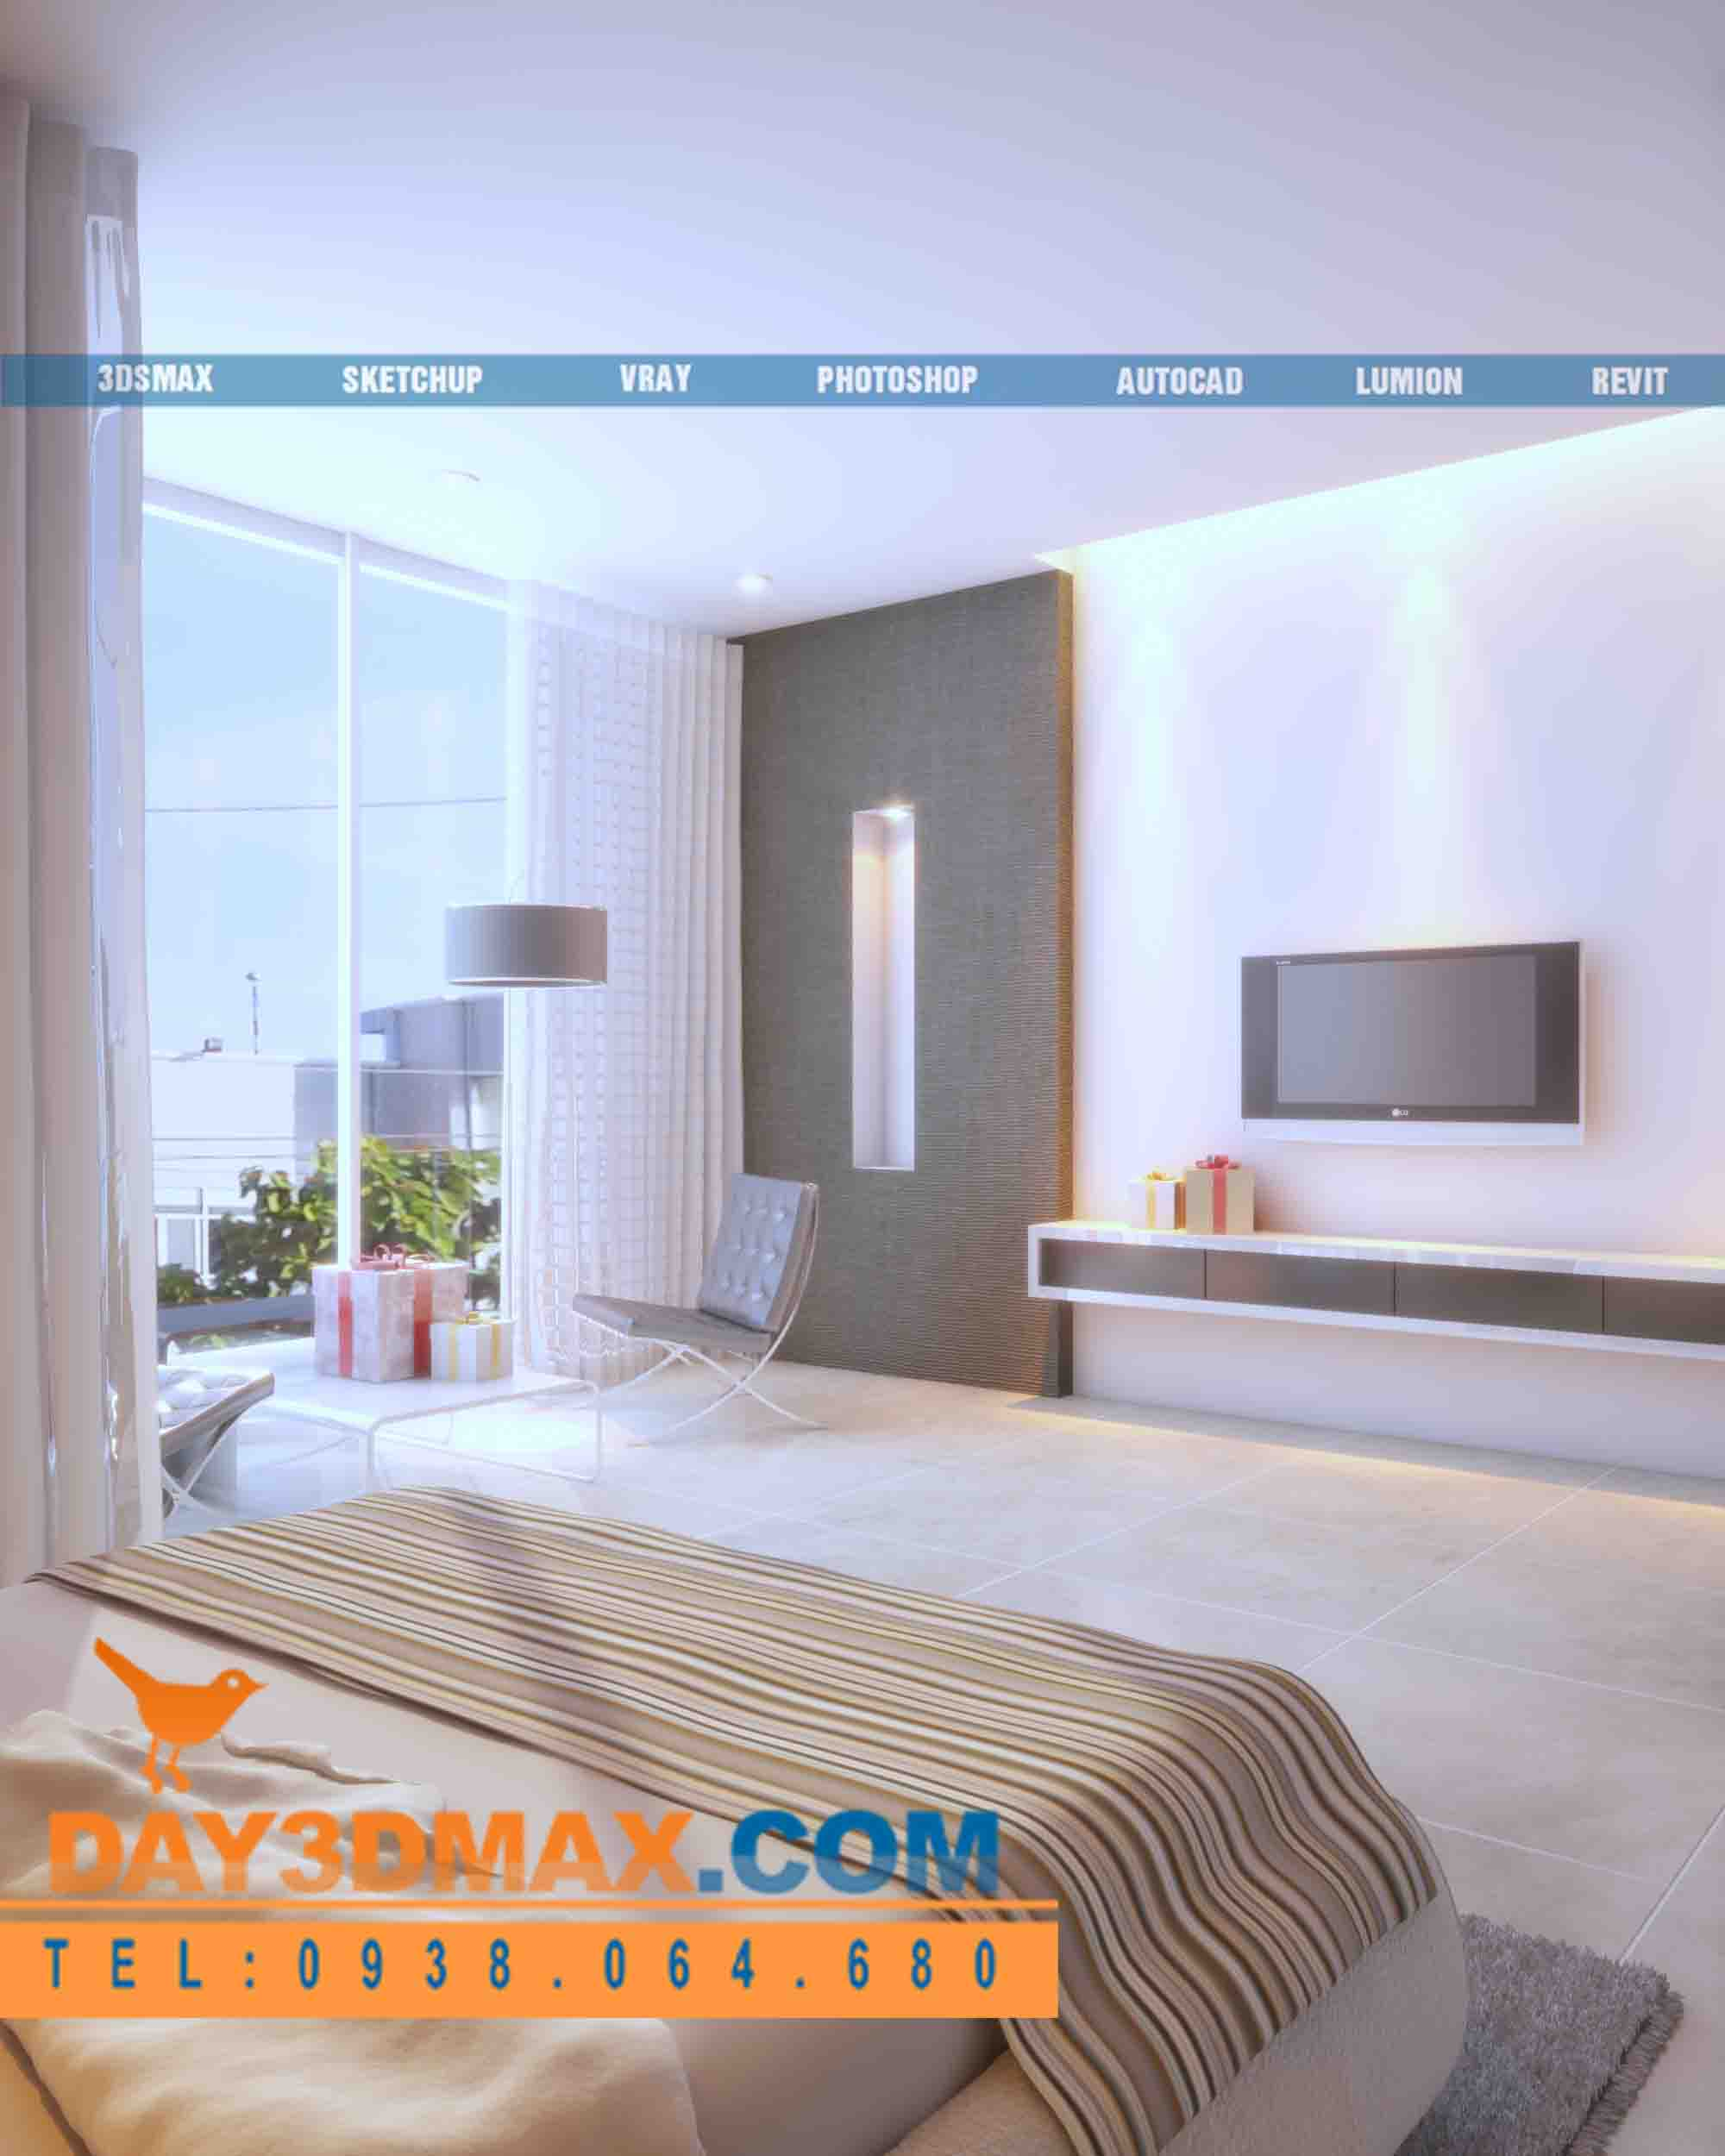 Online 3d Course Render An Interior Of A Bedroom With Vray 3dsmax